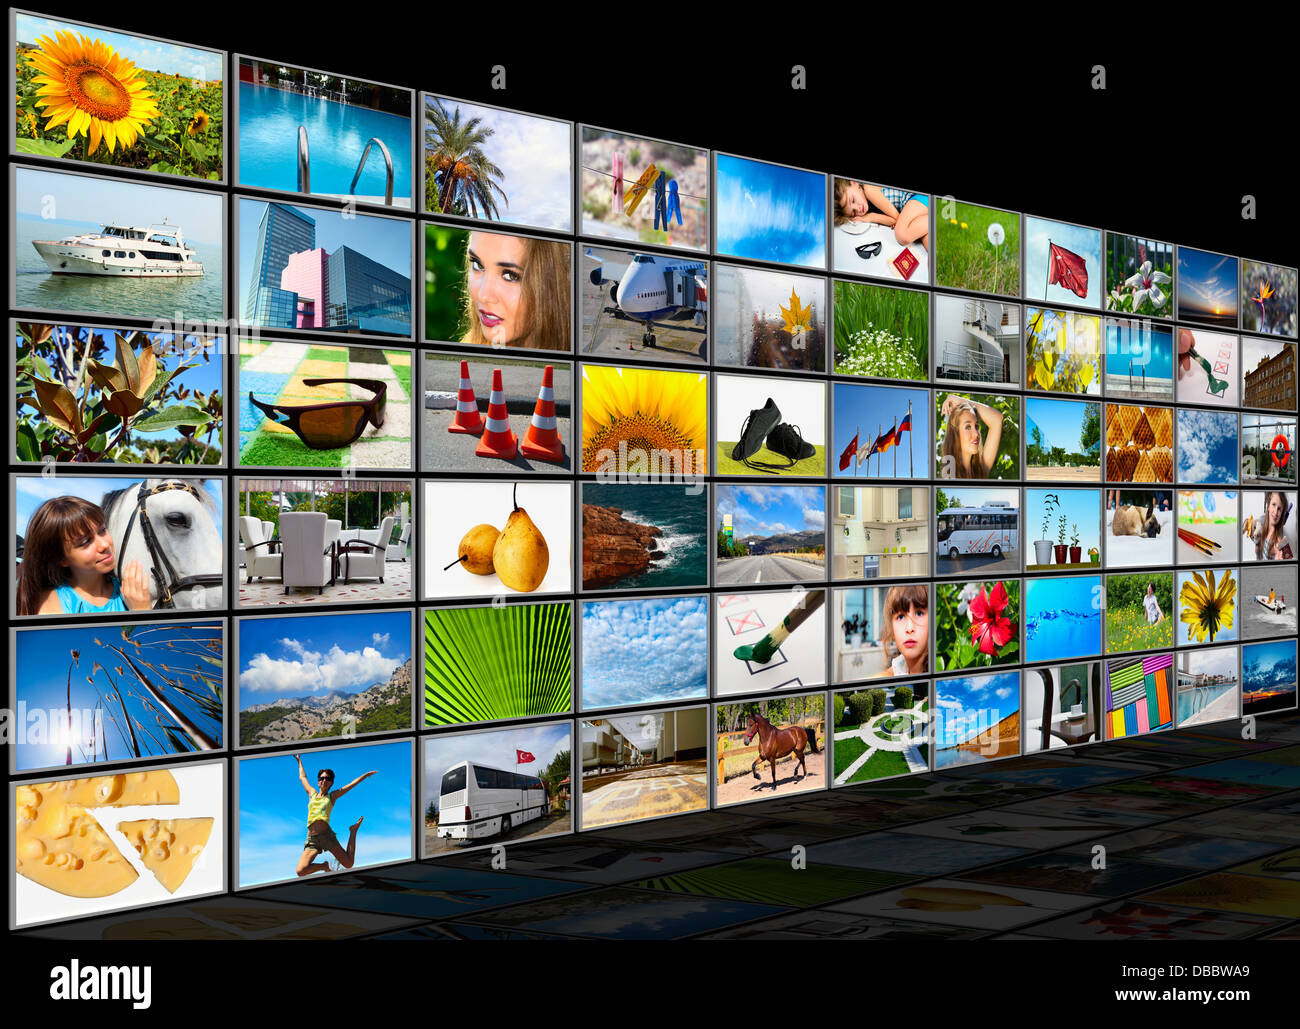 Screens multimedia panel - Stock Image